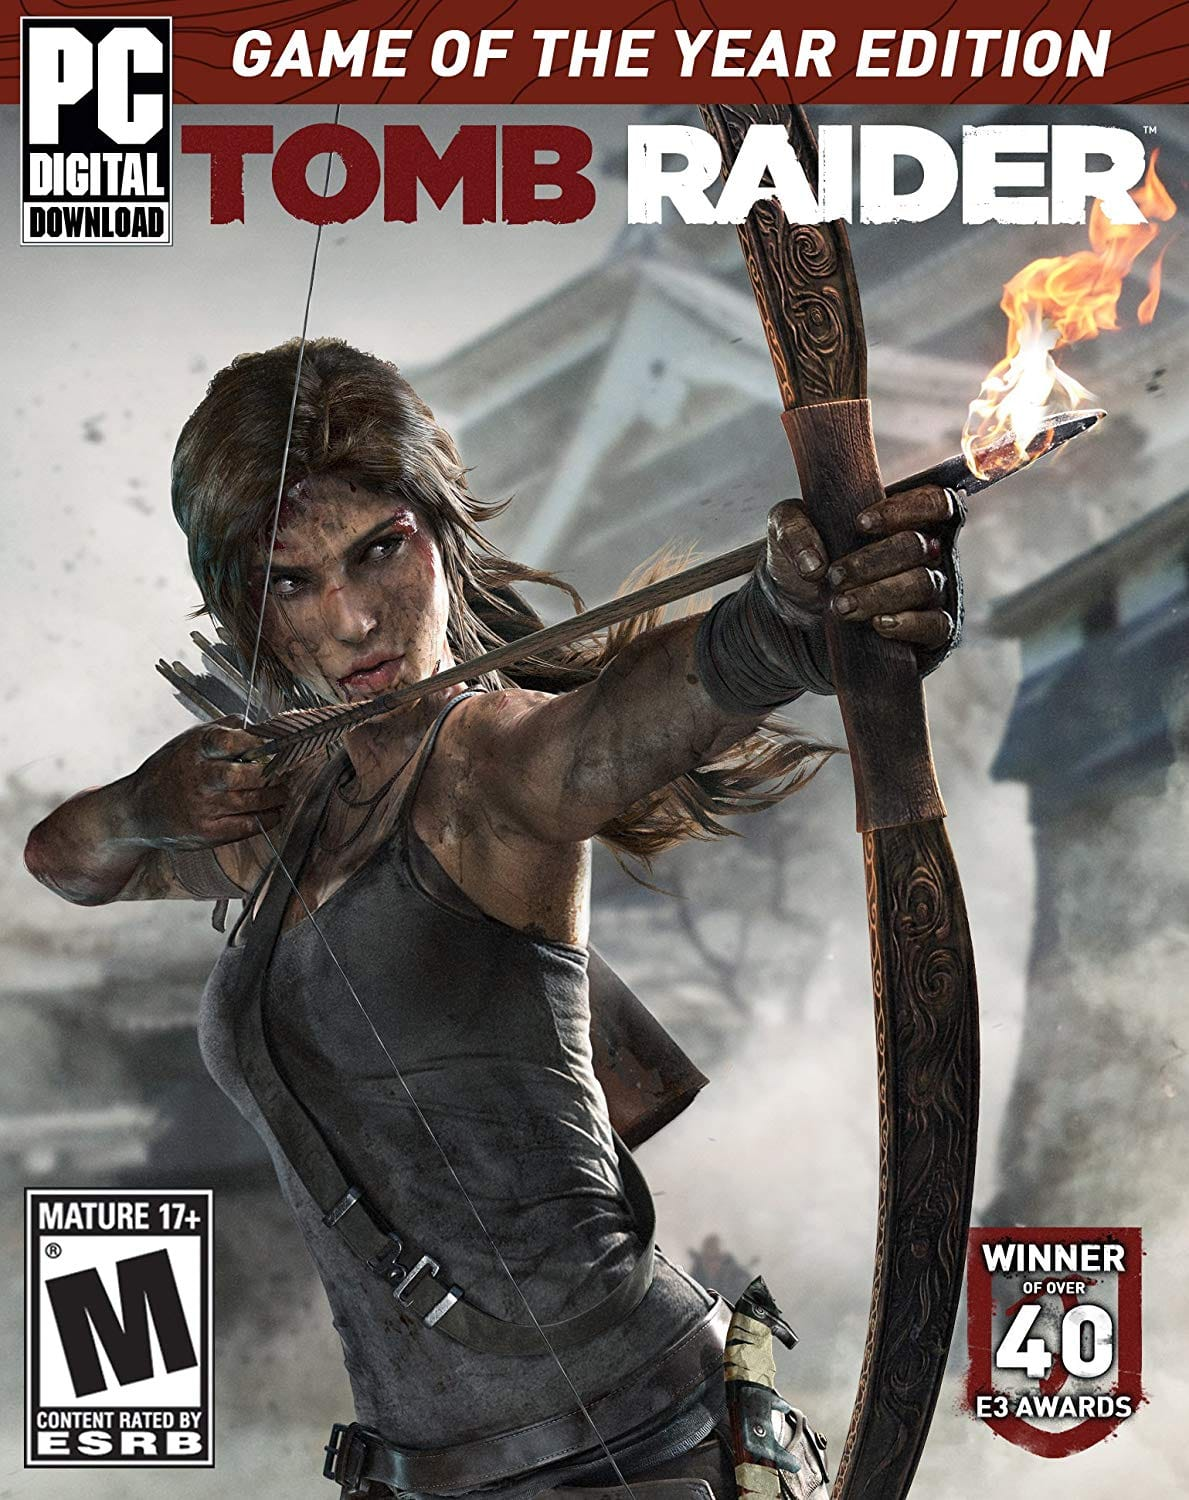 Tomb Raider Game of the Year Edition (PC Digital Download) $4.50 (Amazon)